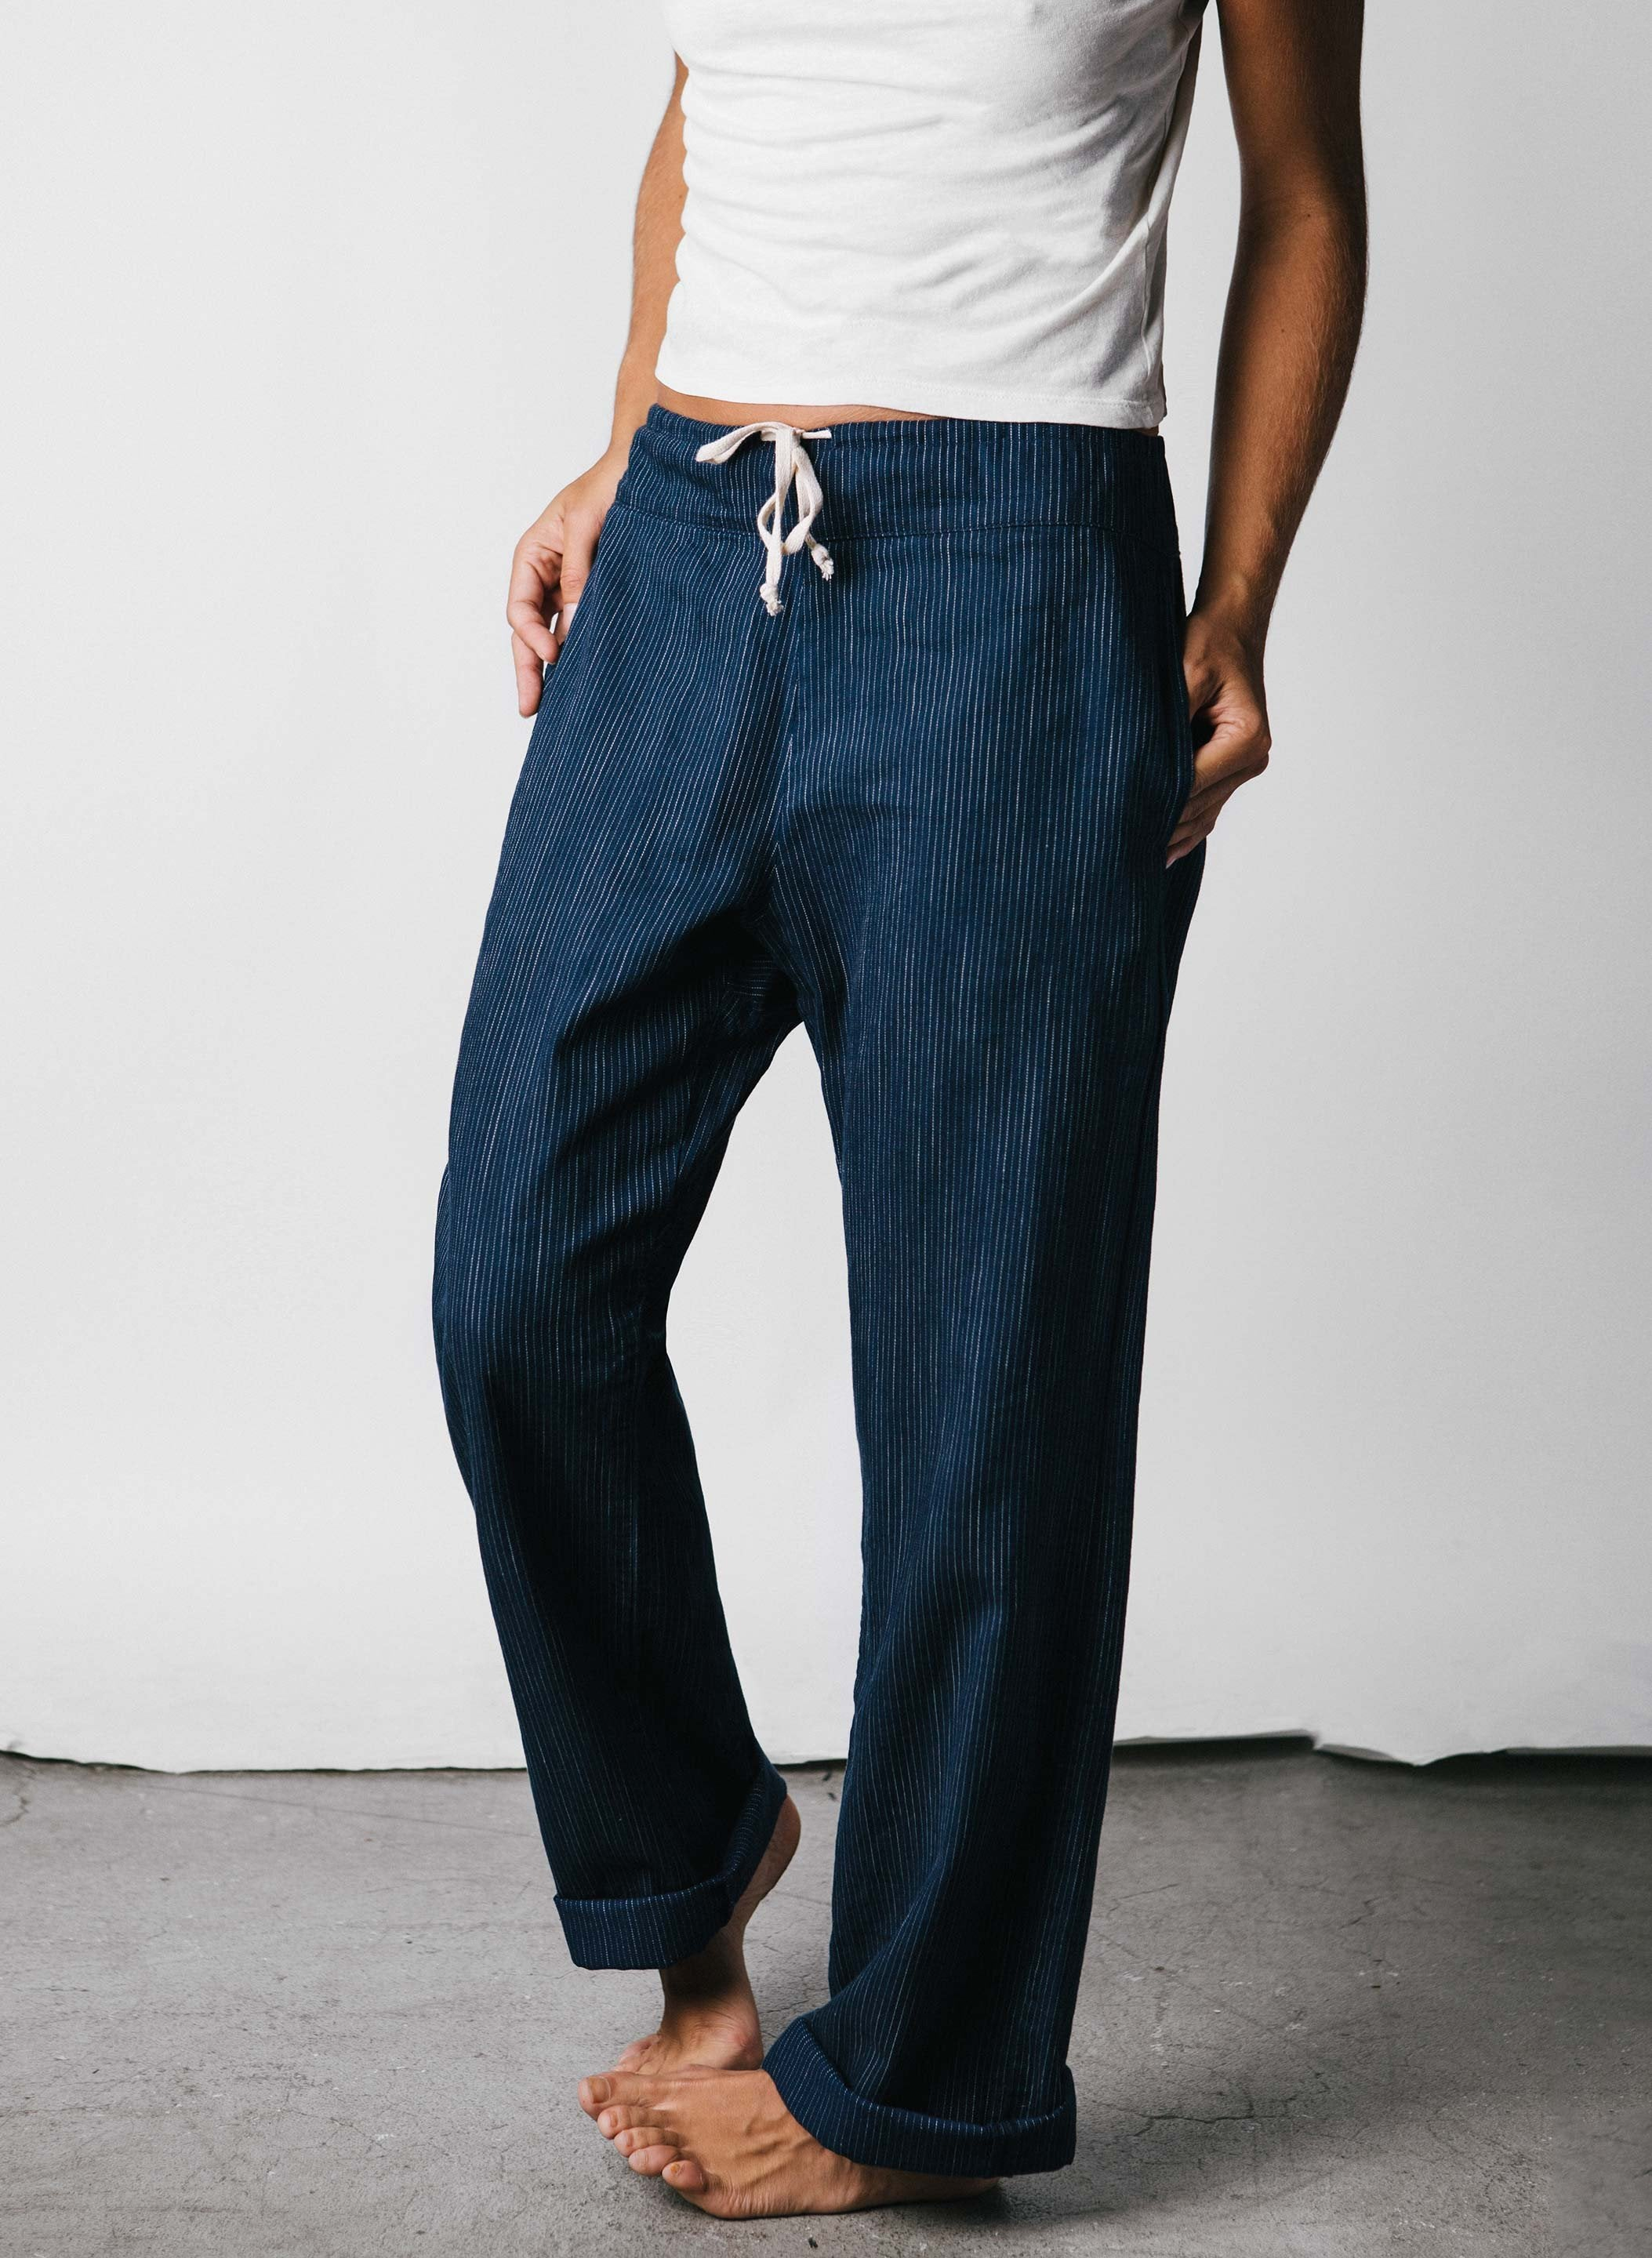 imogene + willie - fethiye washed indigo stripe